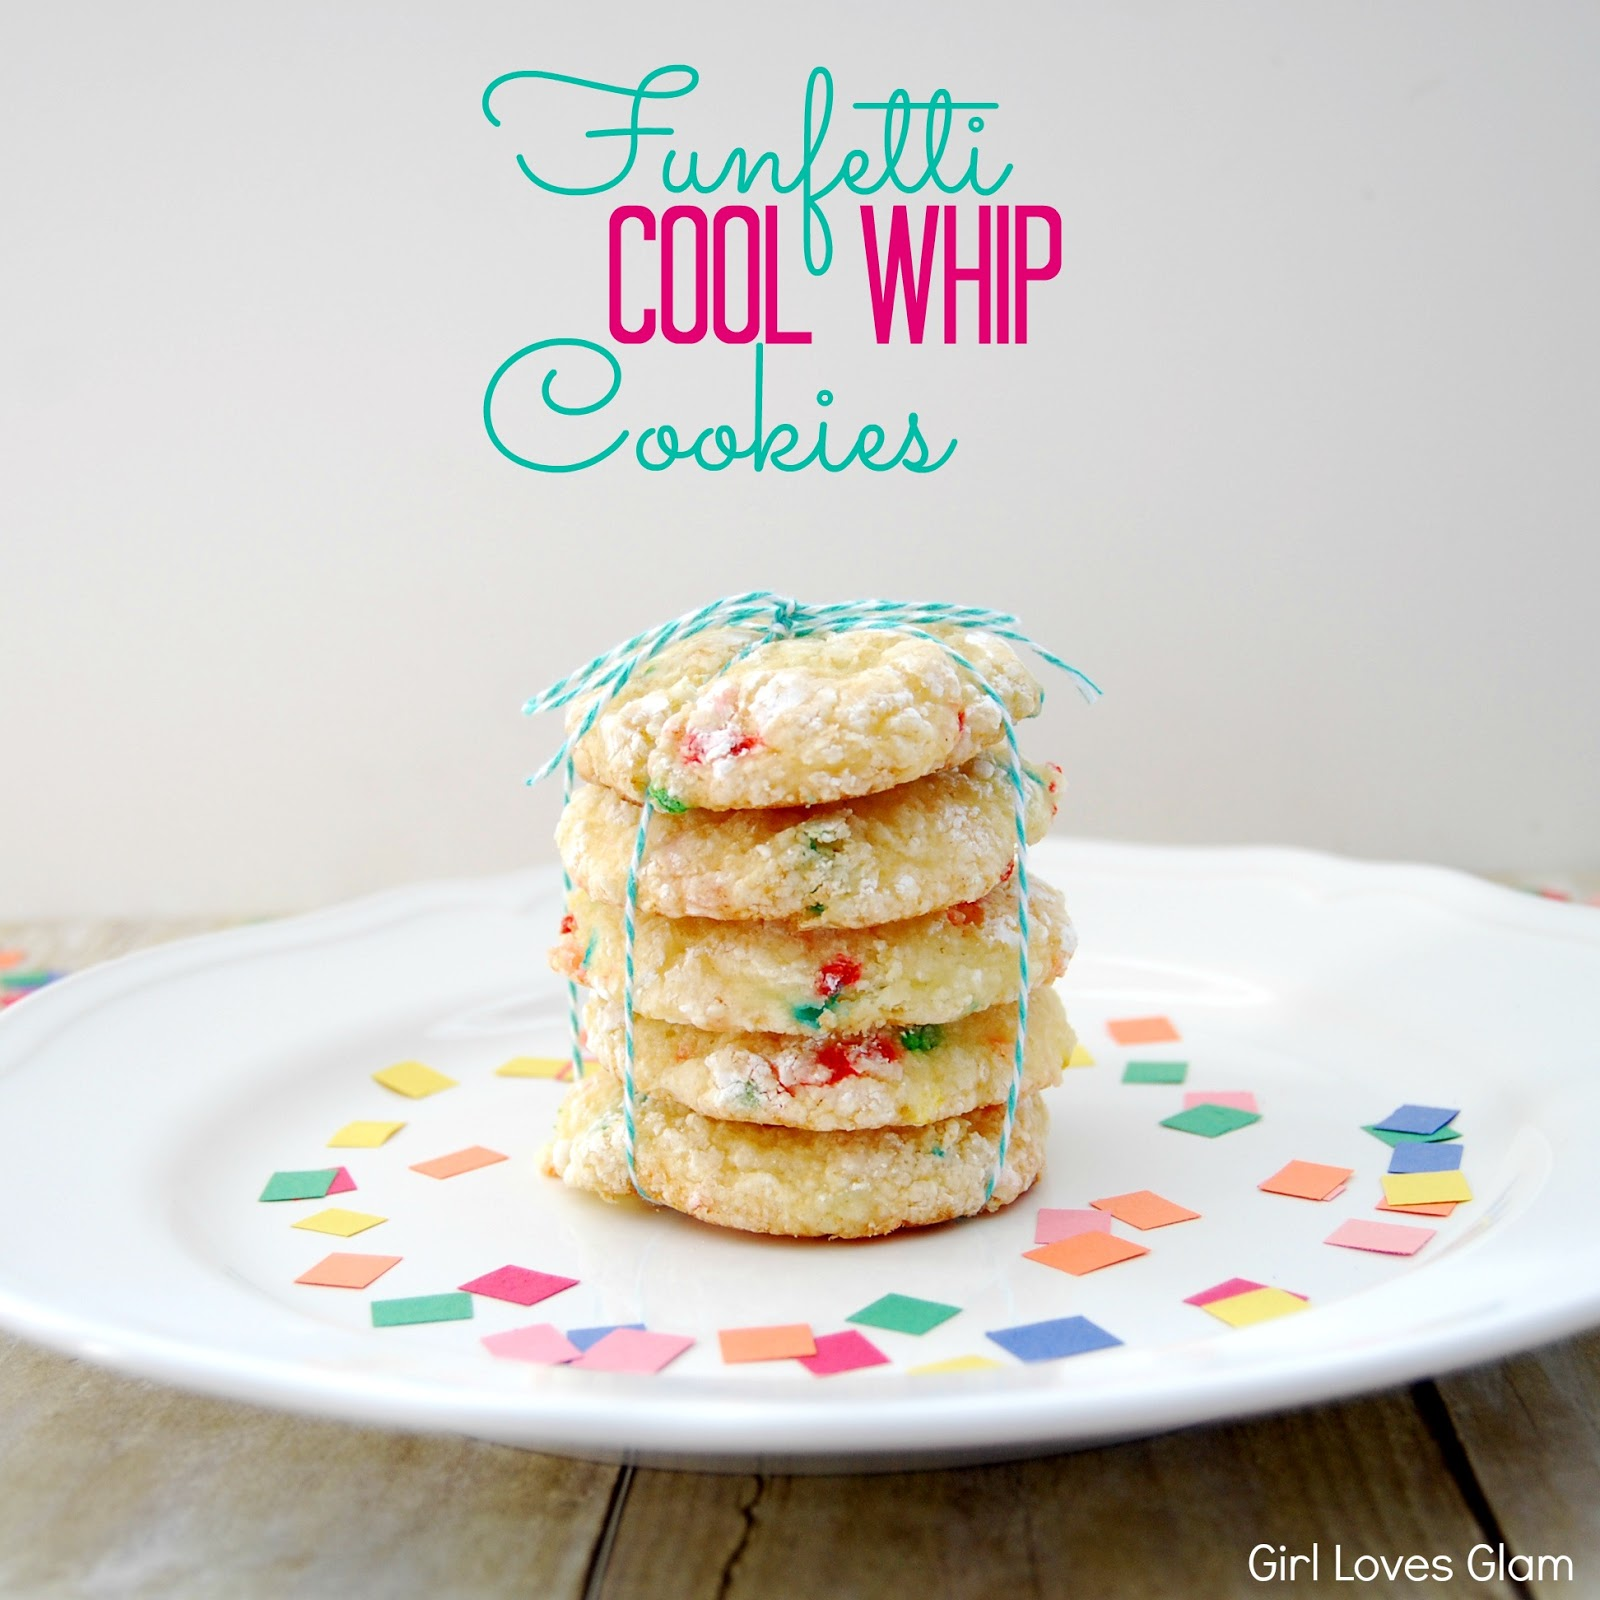 Cake and cool whip recipes